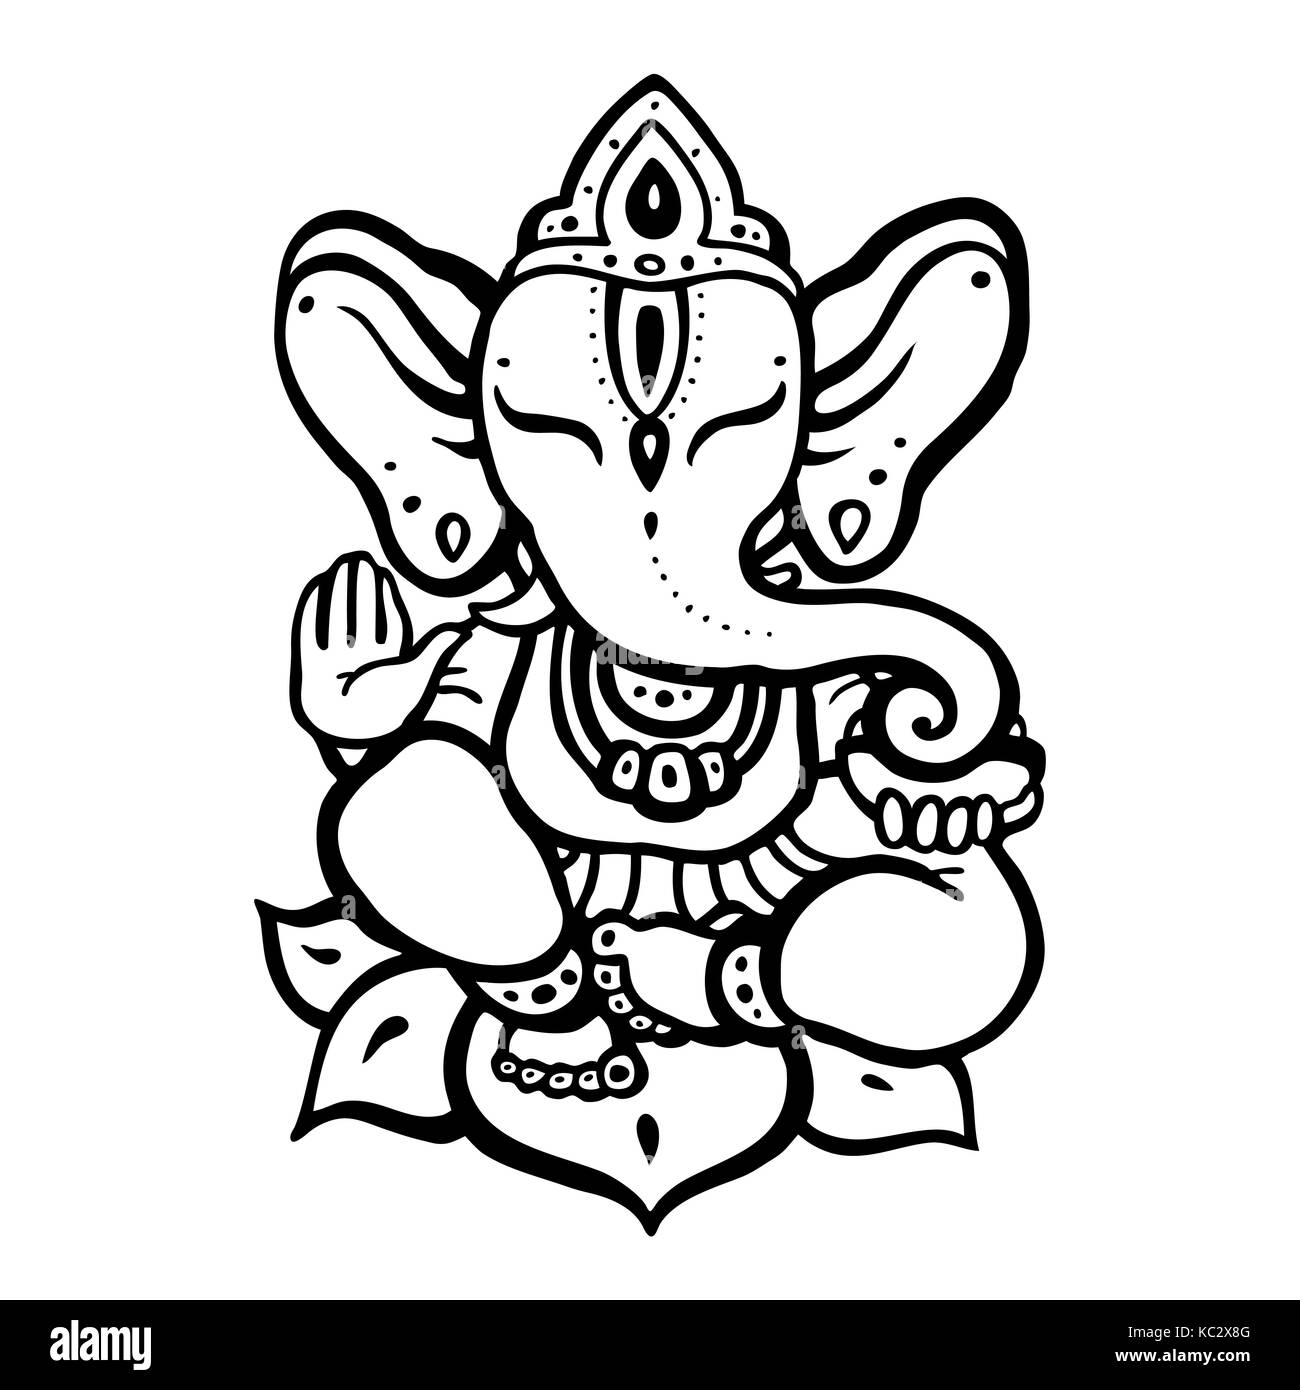 lord ganesh black and white stock